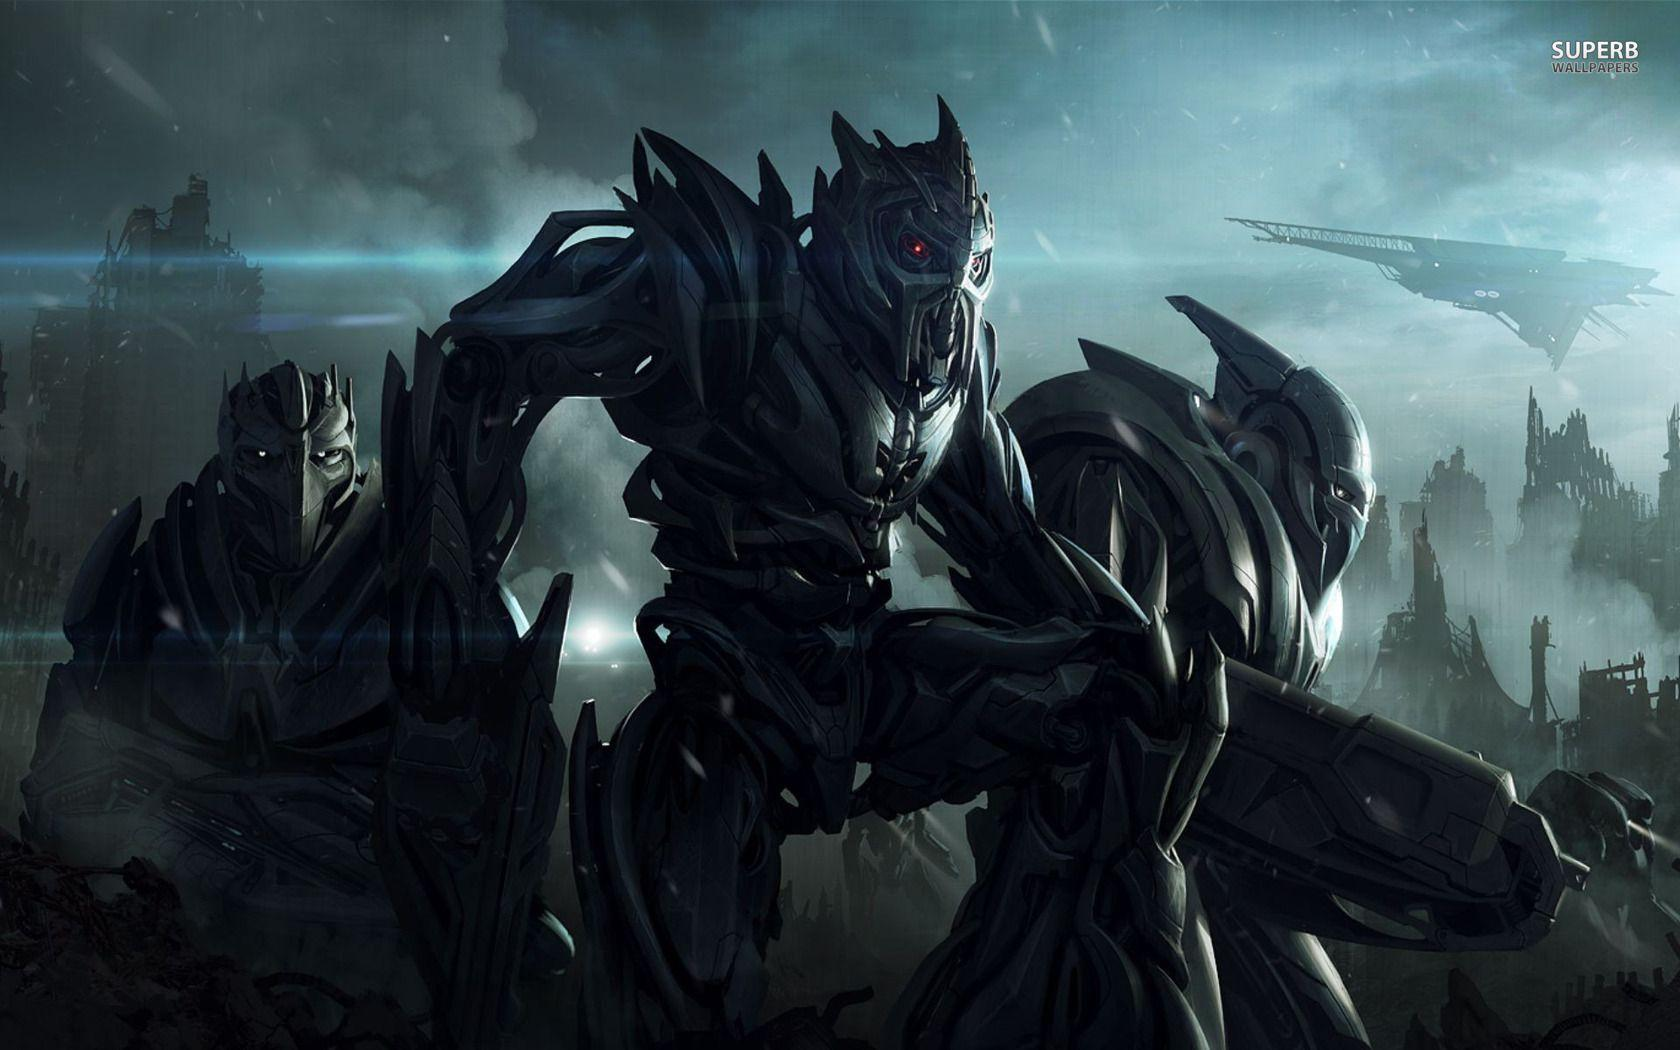 Transformers Fall Of Cybertron Wallpaper Hd Transformers 4 Rise Of Galvatron Wallpapers Wallpaper Cave